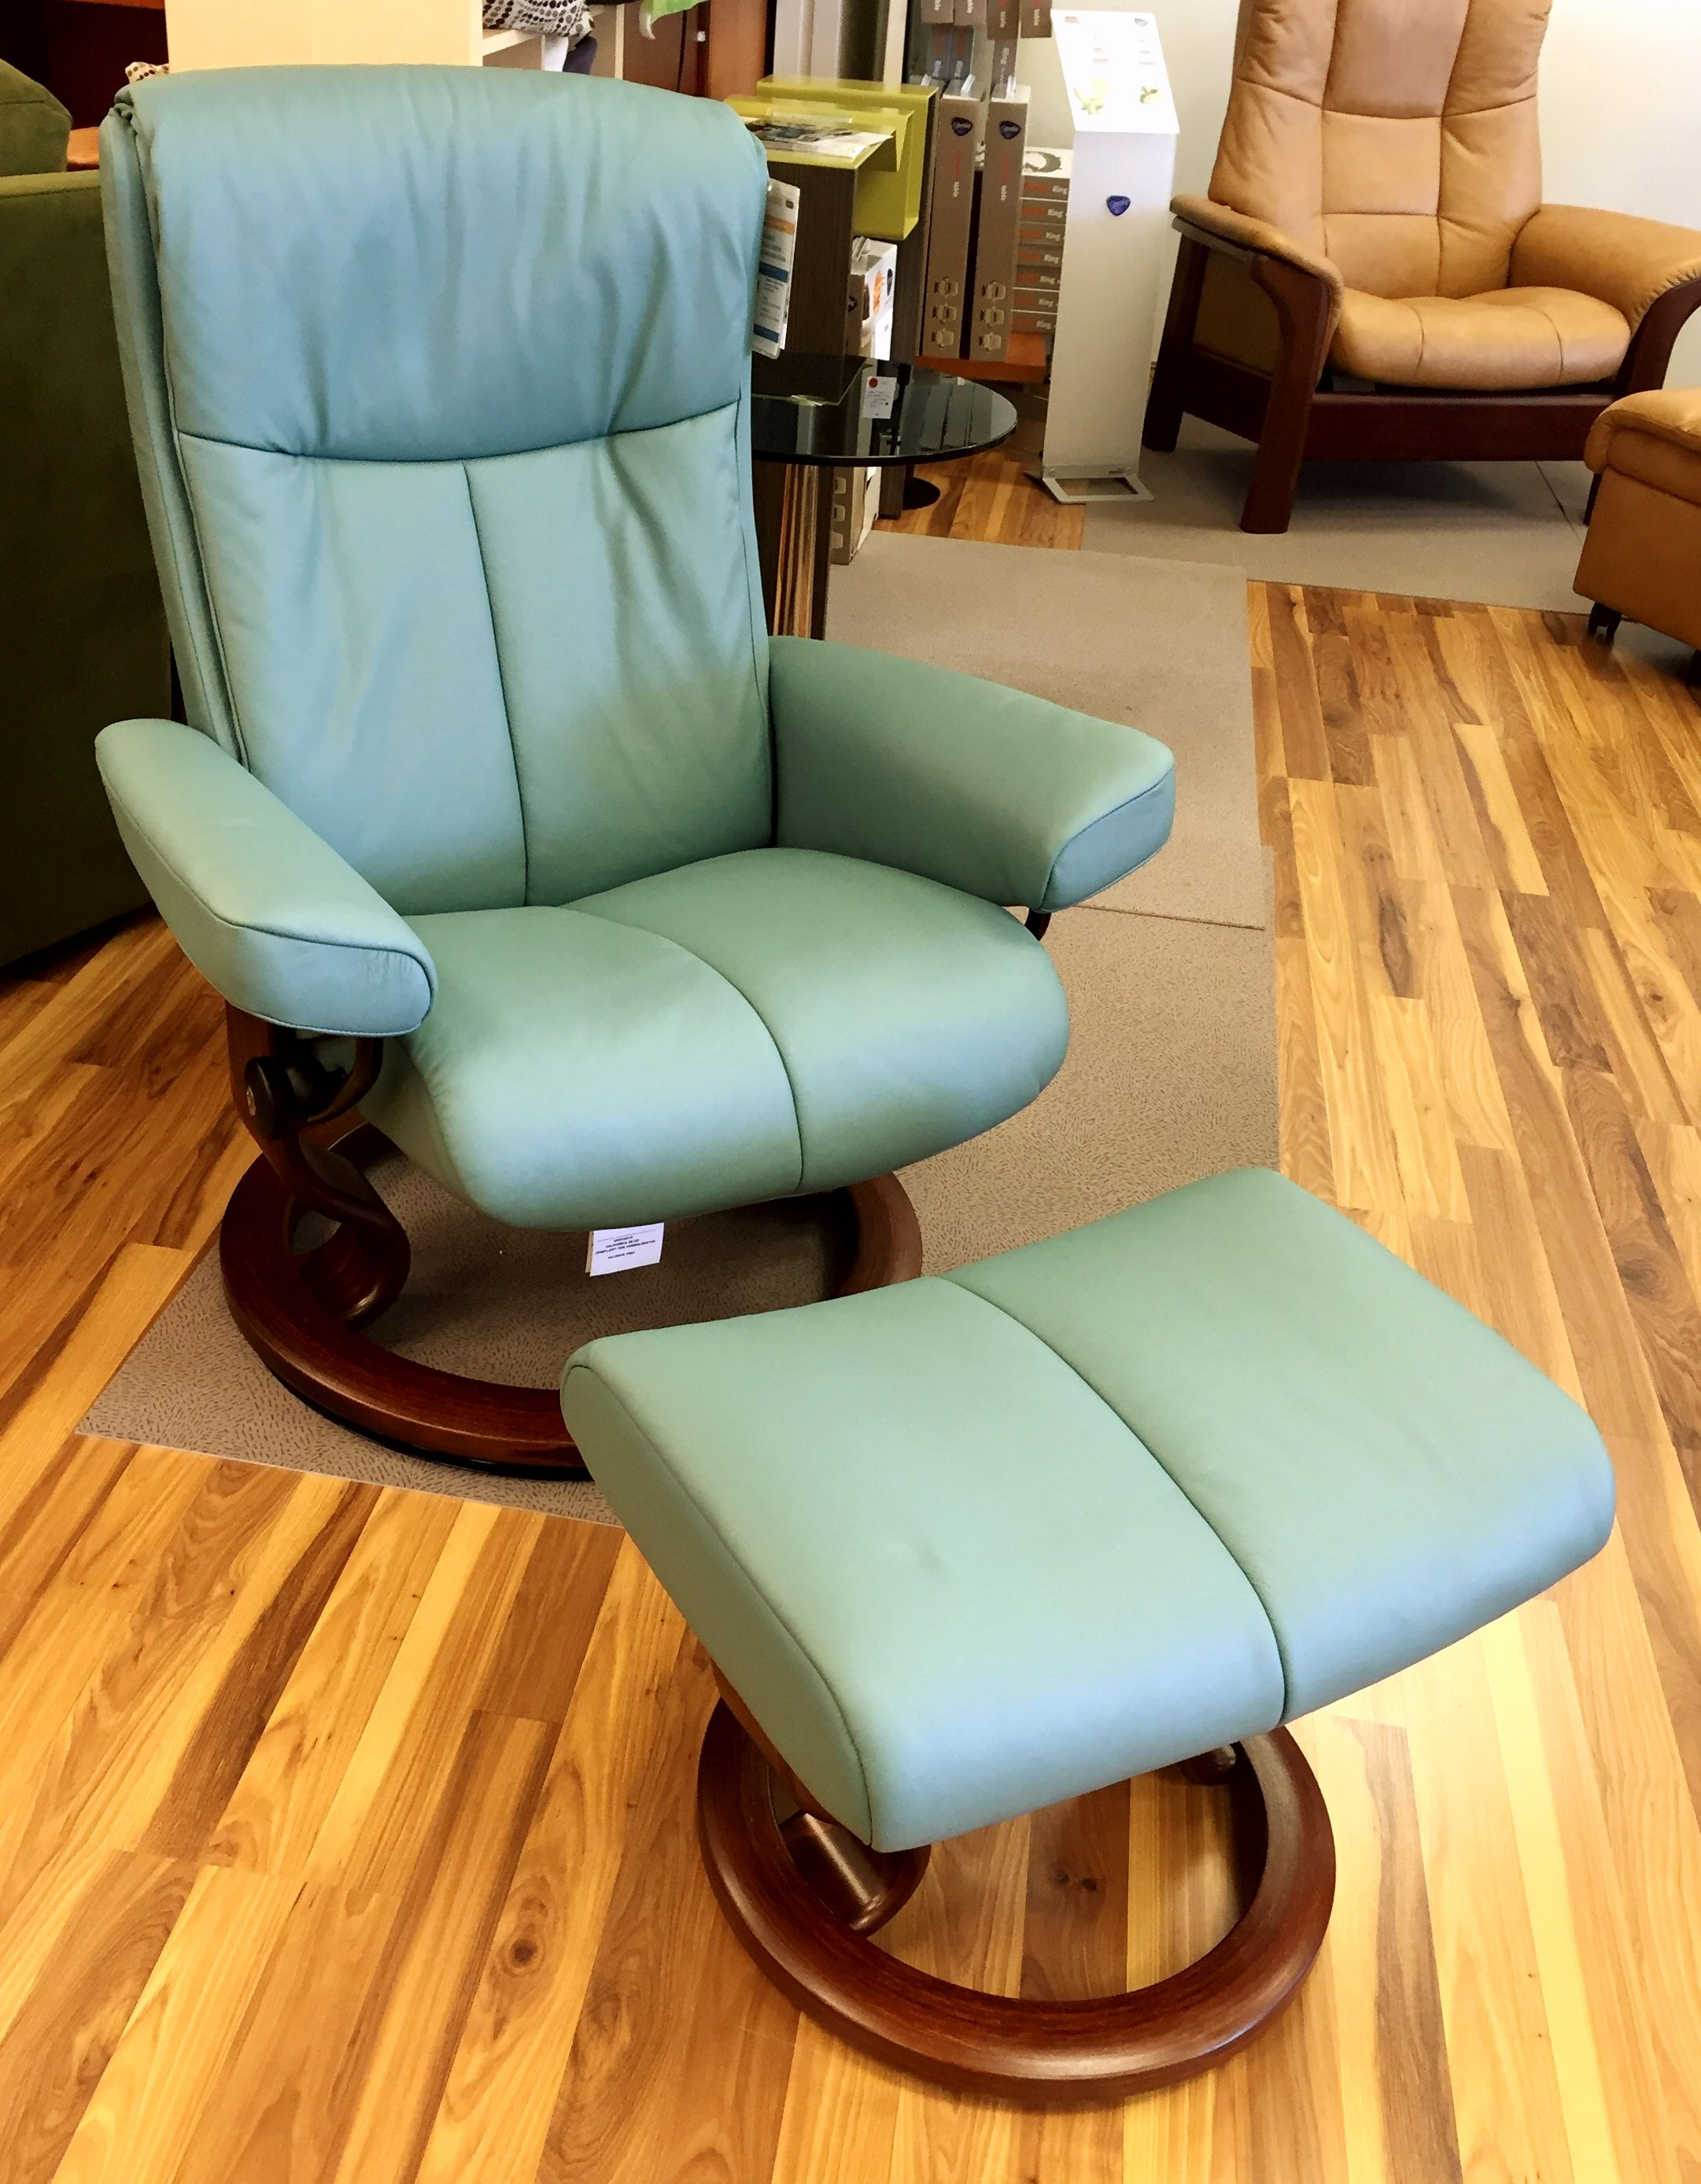 stressless chair similar futon bed target ekornes peace recliner and ottoman in paloma aqua